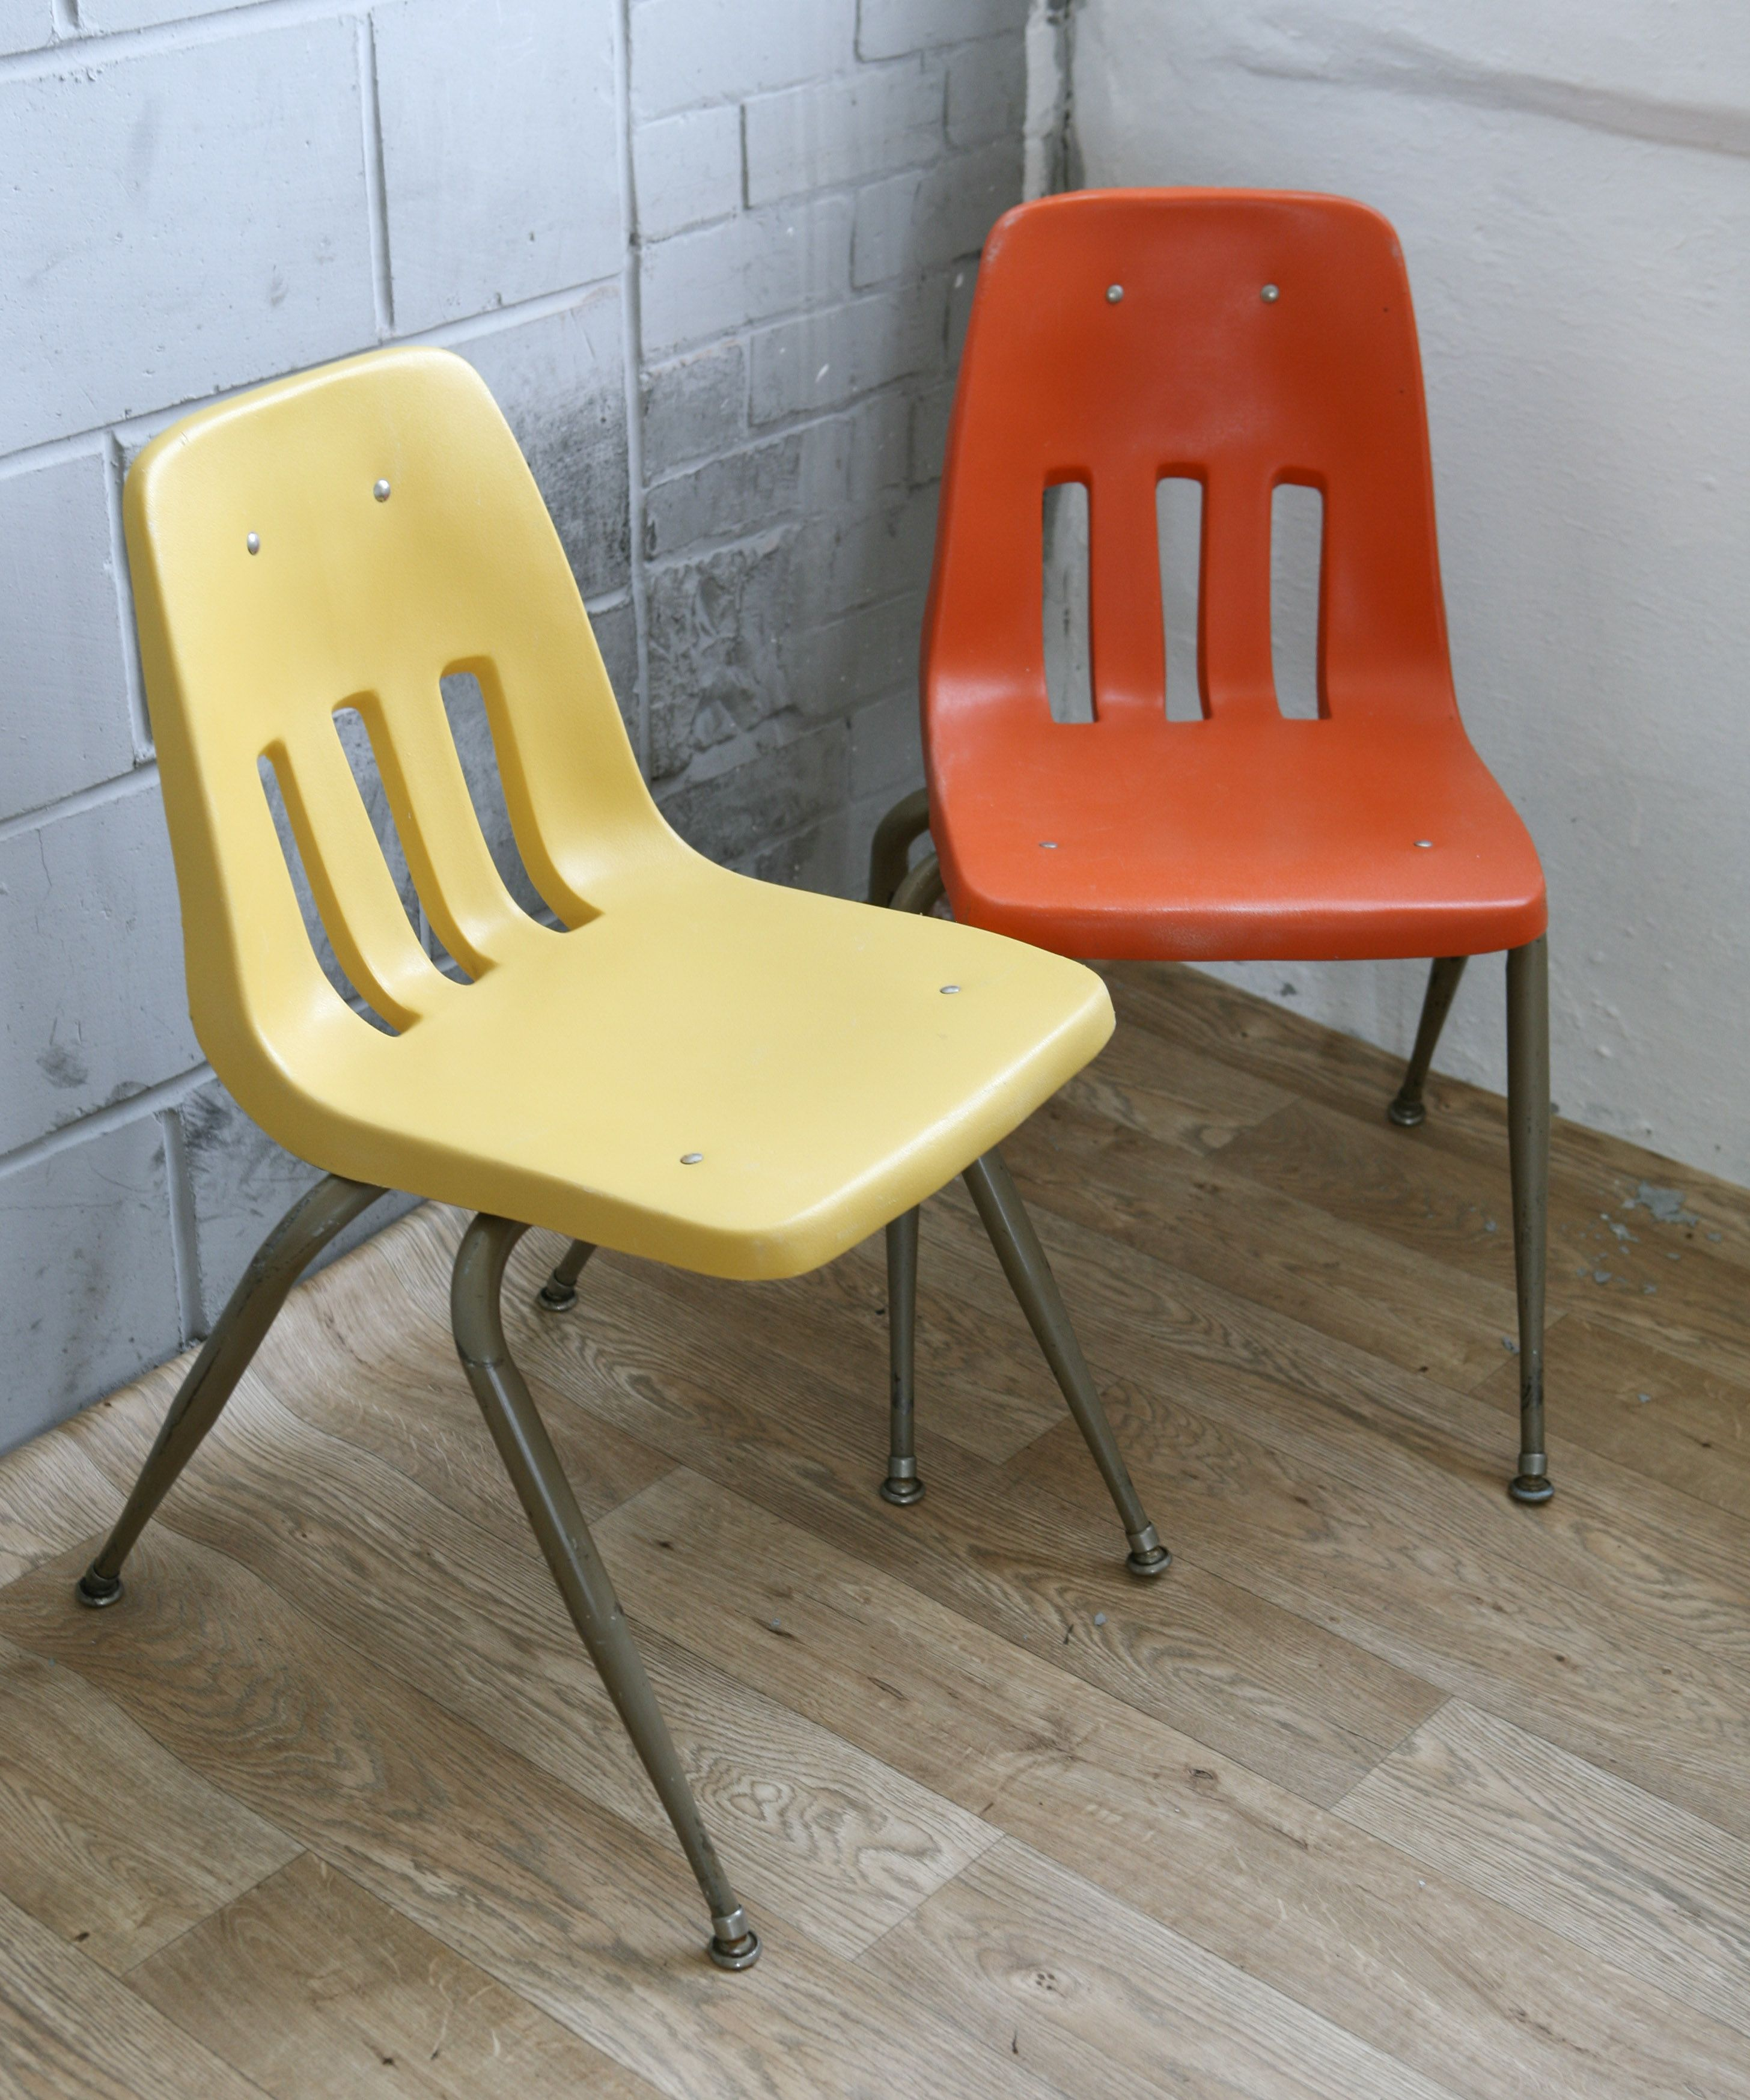 Virco Chairs Virco School Chairs Furniture Store Pinterest School